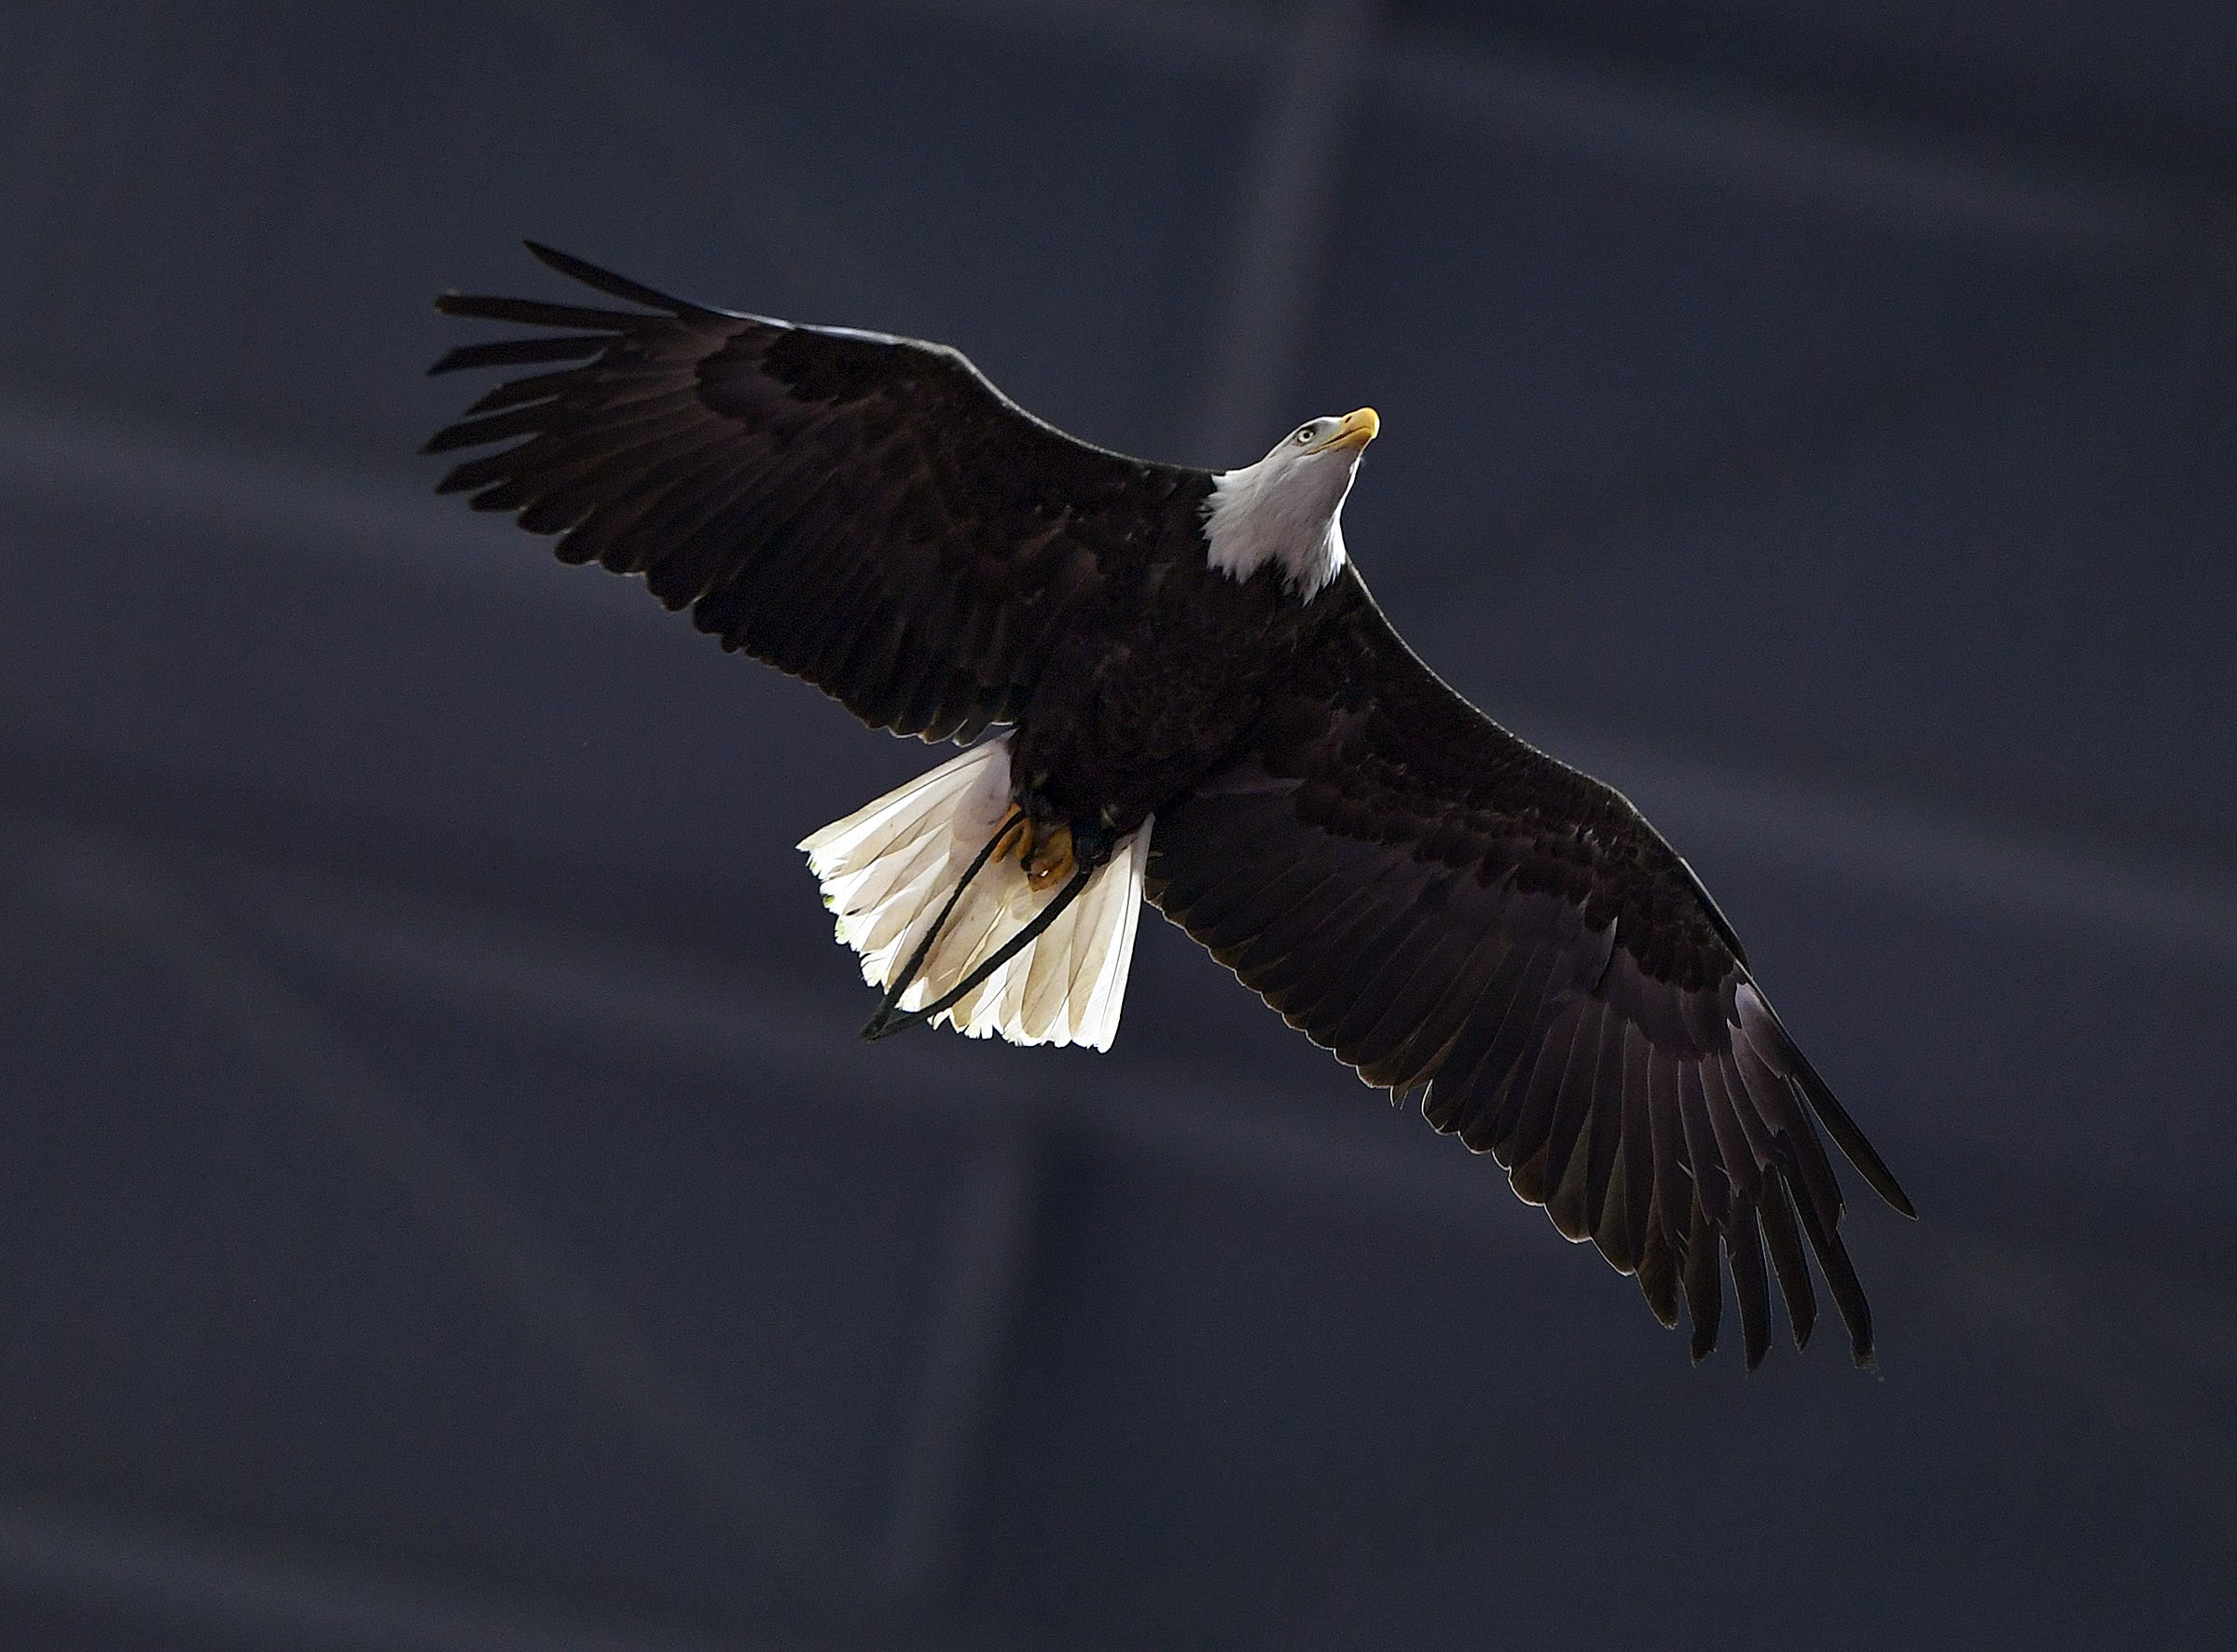 An eagle flies during pregame of the Goodyear Cotton Bowl at AT&T stadium in Arlington, TX Saturday, December 29, 2018.